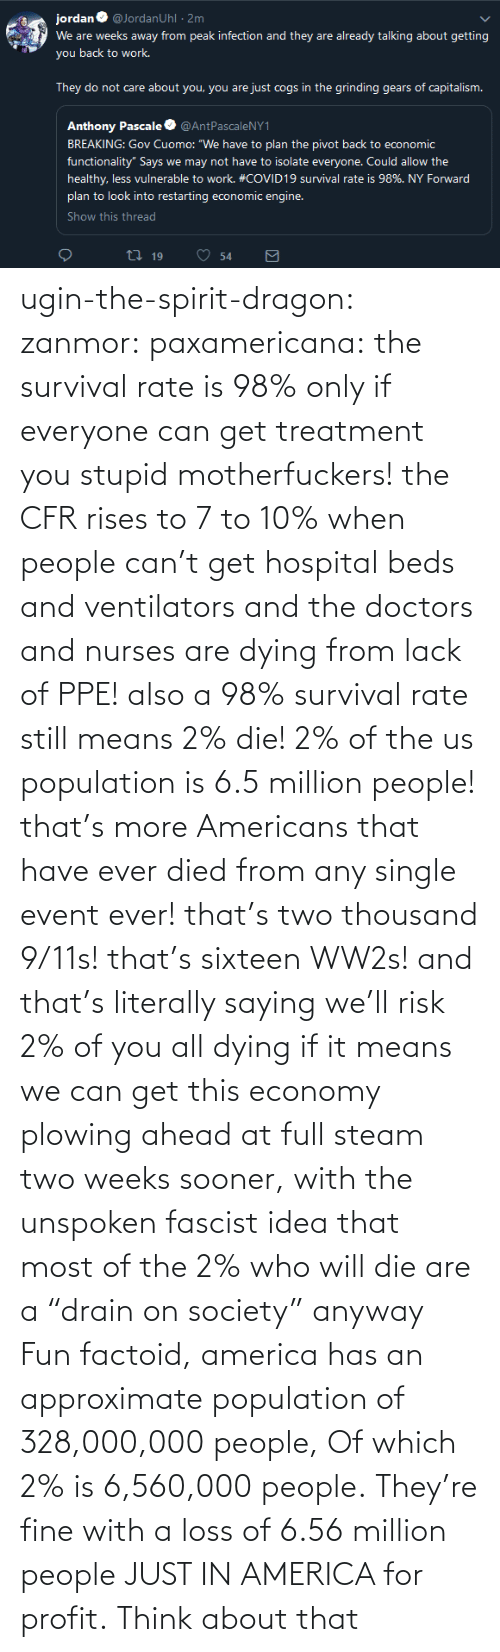 "sooner: ugin-the-spirit-dragon: zanmor:   paxamericana:  the survival rate is 98% only if everyone can get treatment you stupid motherfuckers! the CFR rises to 7 to 10% when people can't get hospital beds and ventilators and the doctors and nurses are dying from lack of PPE!  also a 98% survival rate still means 2% die! 2% of the us population is 6.5 million people! that's more Americans that have ever died from any single event ever! that's two thousand 9/11s! that's sixteen WW2s!  and that's literally saying we'll risk 2% of you all dying if it means we can get this economy plowing ahead at full steam two weeks sooner, with the unspoken fascist idea that most of the 2% who will die are a ""drain on society"" anyway    Fun factoid, america has an approximate population of 328,000,000 people,  Of which 2% is 6,560,000 people. They're fine with a loss of 6.56 million people JUST IN AMERICA for profit. Think about that"